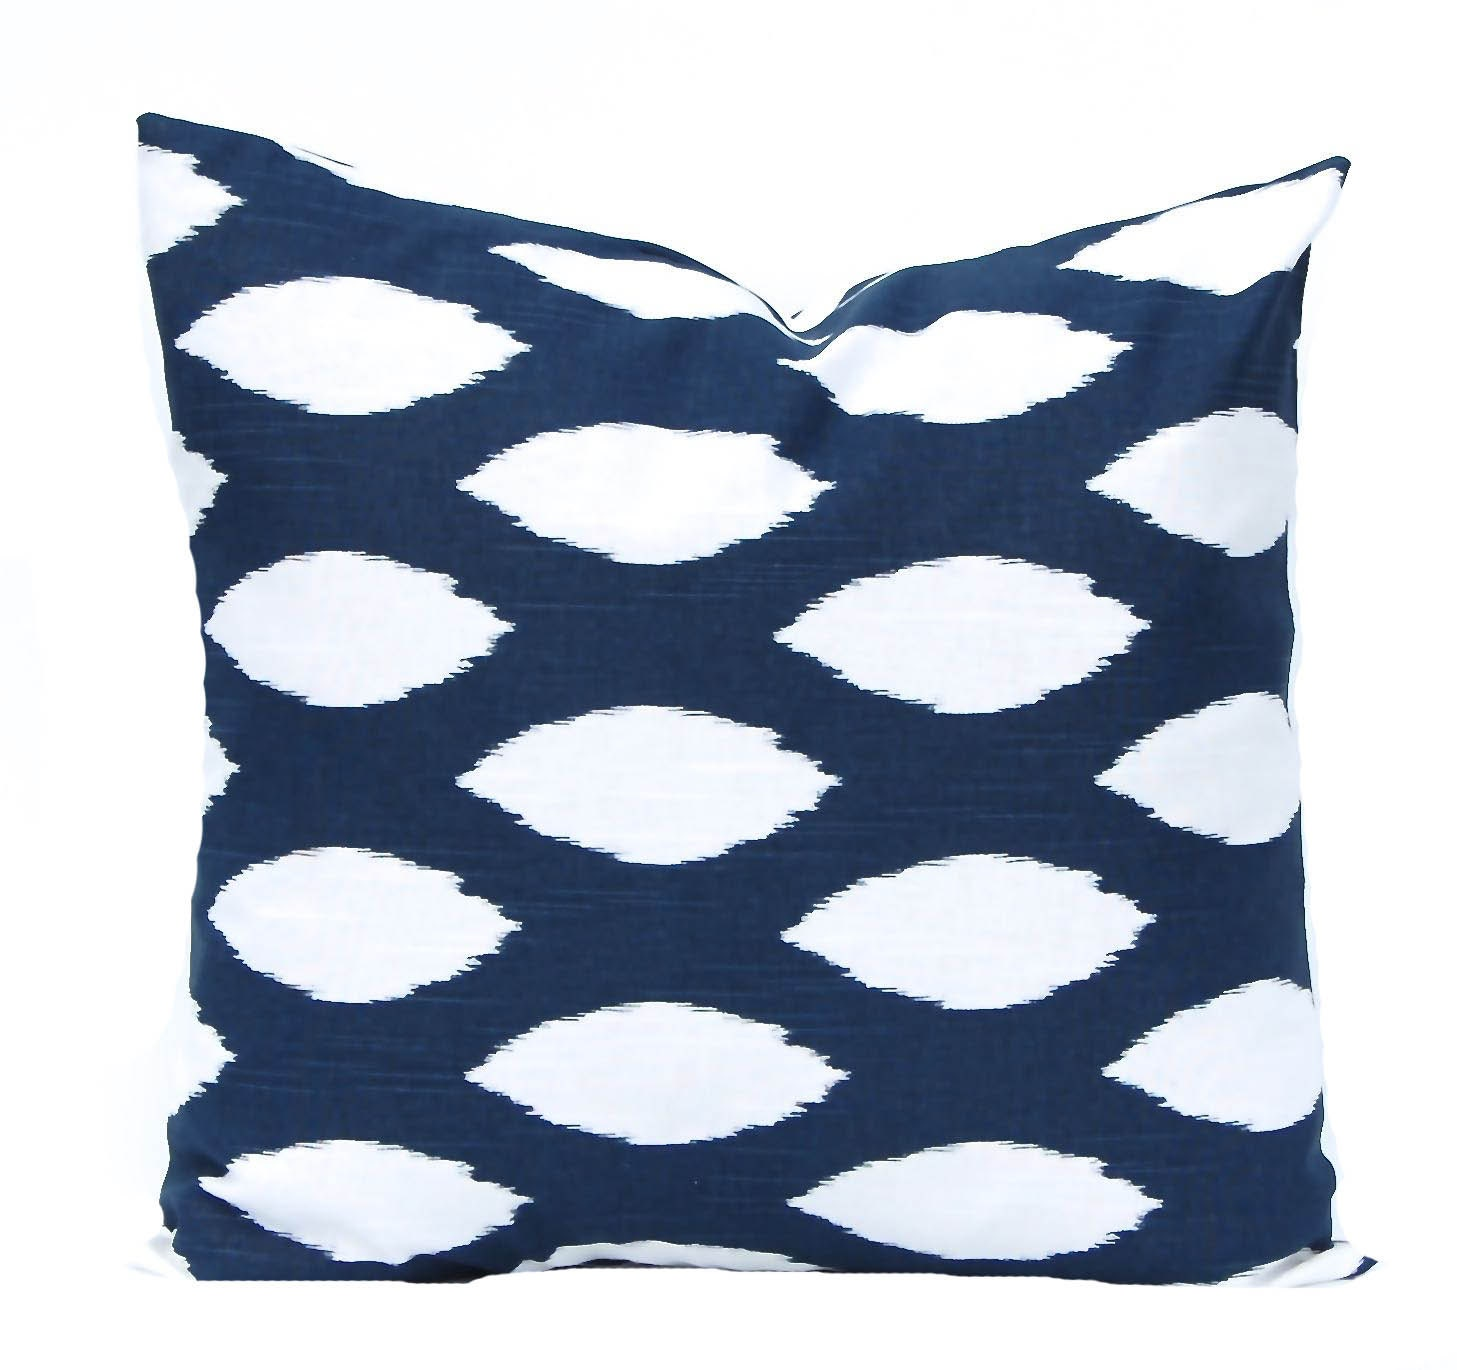 Navy Blue Decorative Pillow Covers : Navy Blue Pillow Covers Navy Pillow Decorative by FestiveHomeDecor